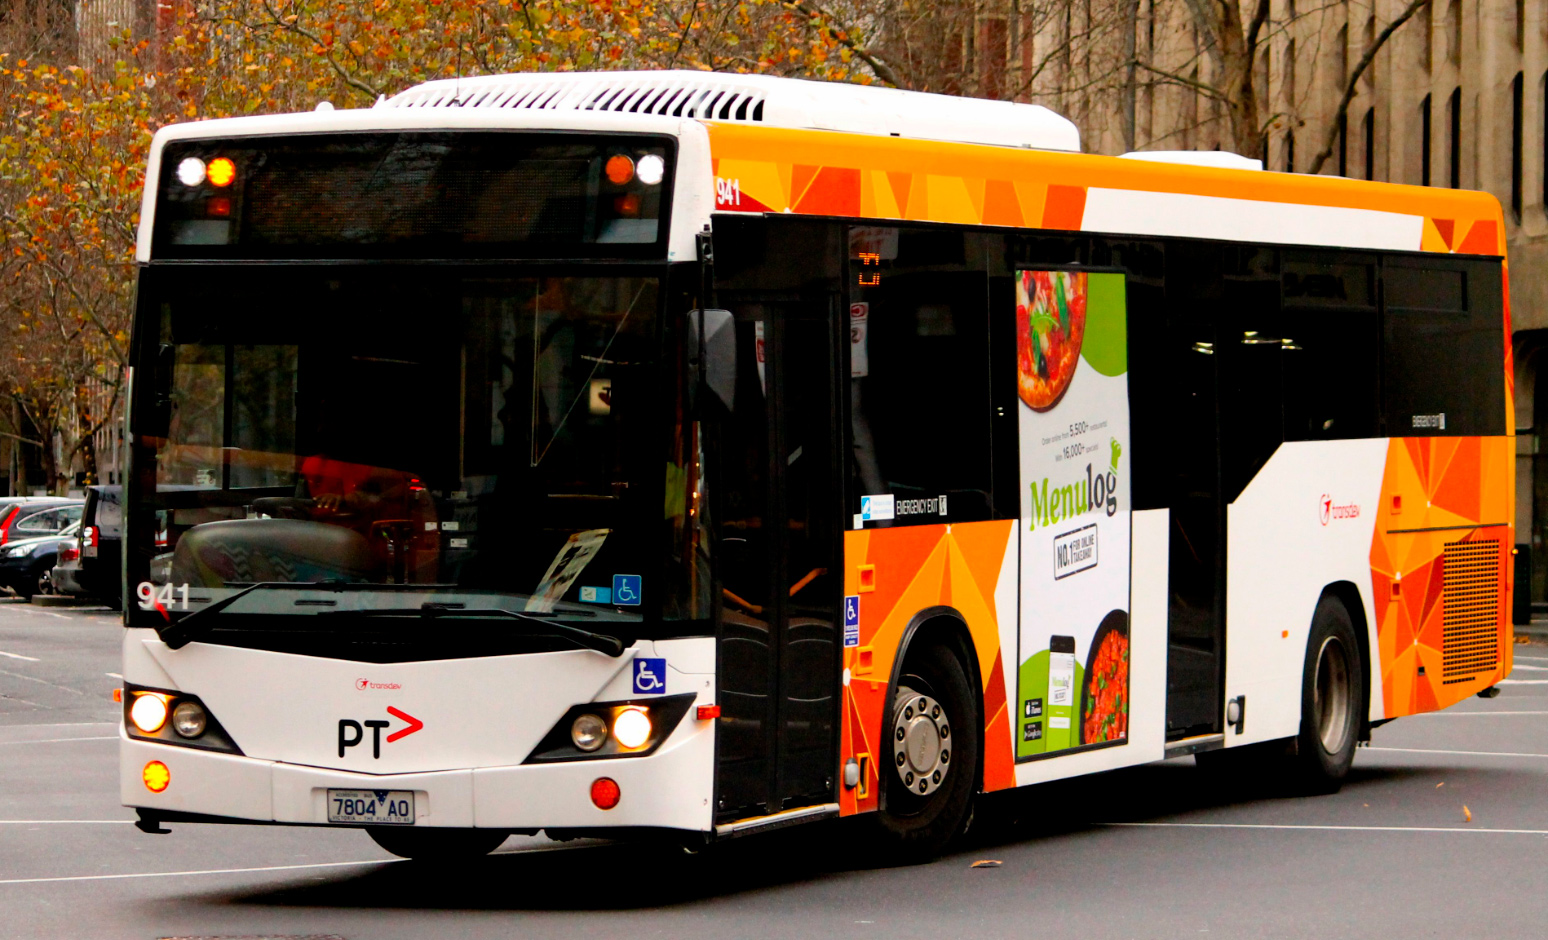 Easy access to bus routes